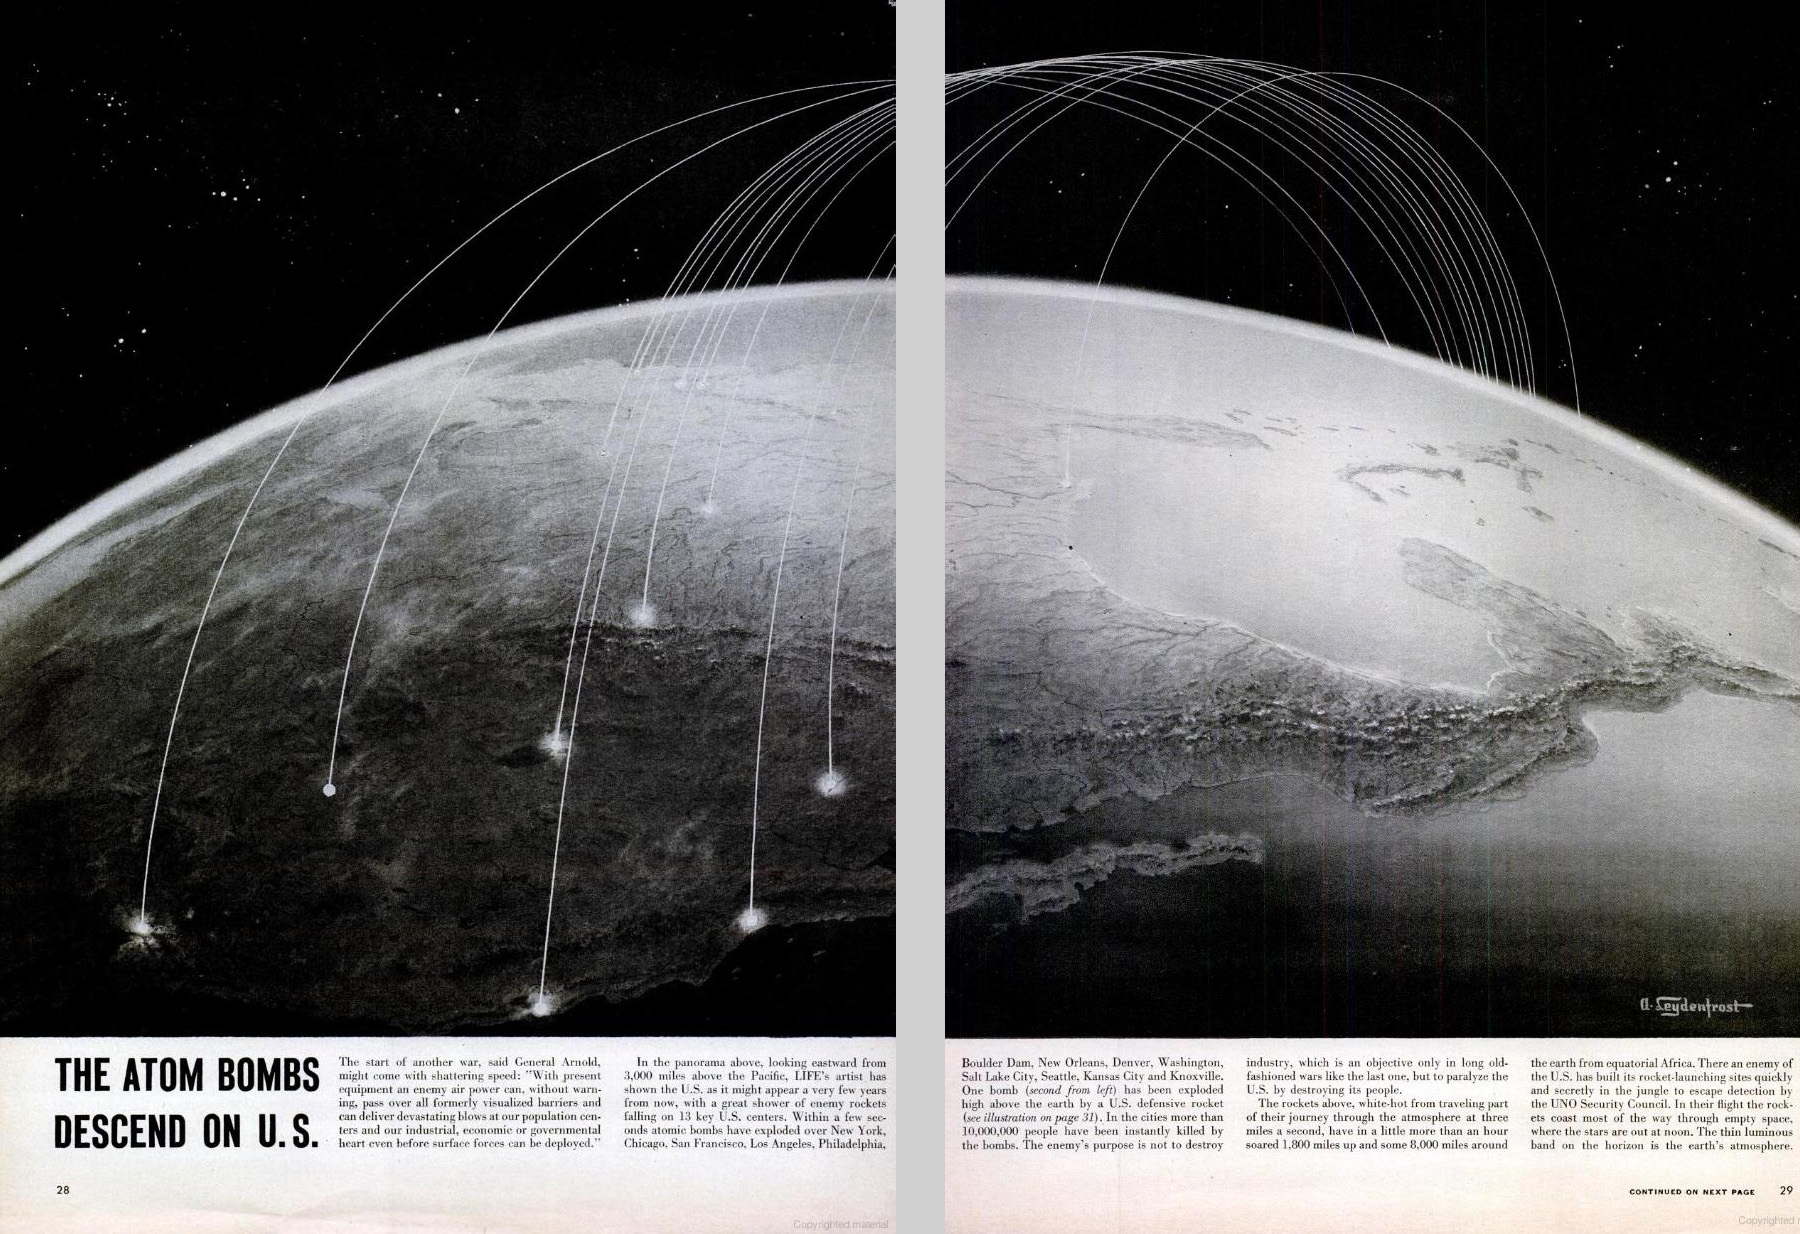 nuclear strikes essay Atomic bomb essays on august 6, 1945, at 8:15 the american plane the enola  gay changed history forever the plane dropped the first atomic bomb over the.